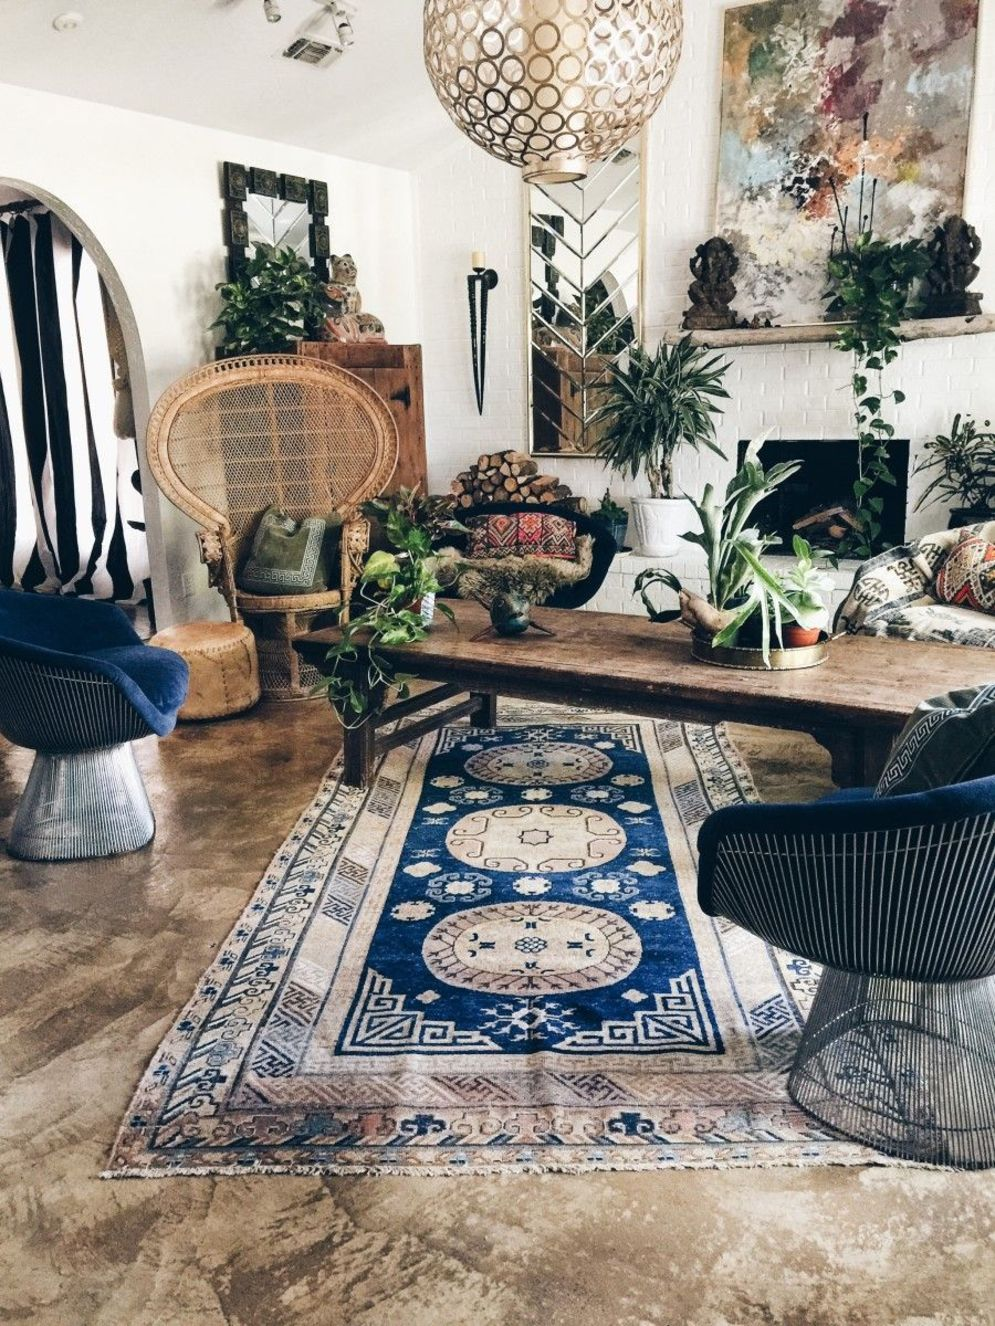 Artful interior style showcasing eclectic Bohemian display with ethnic rugs as decoration Image 13